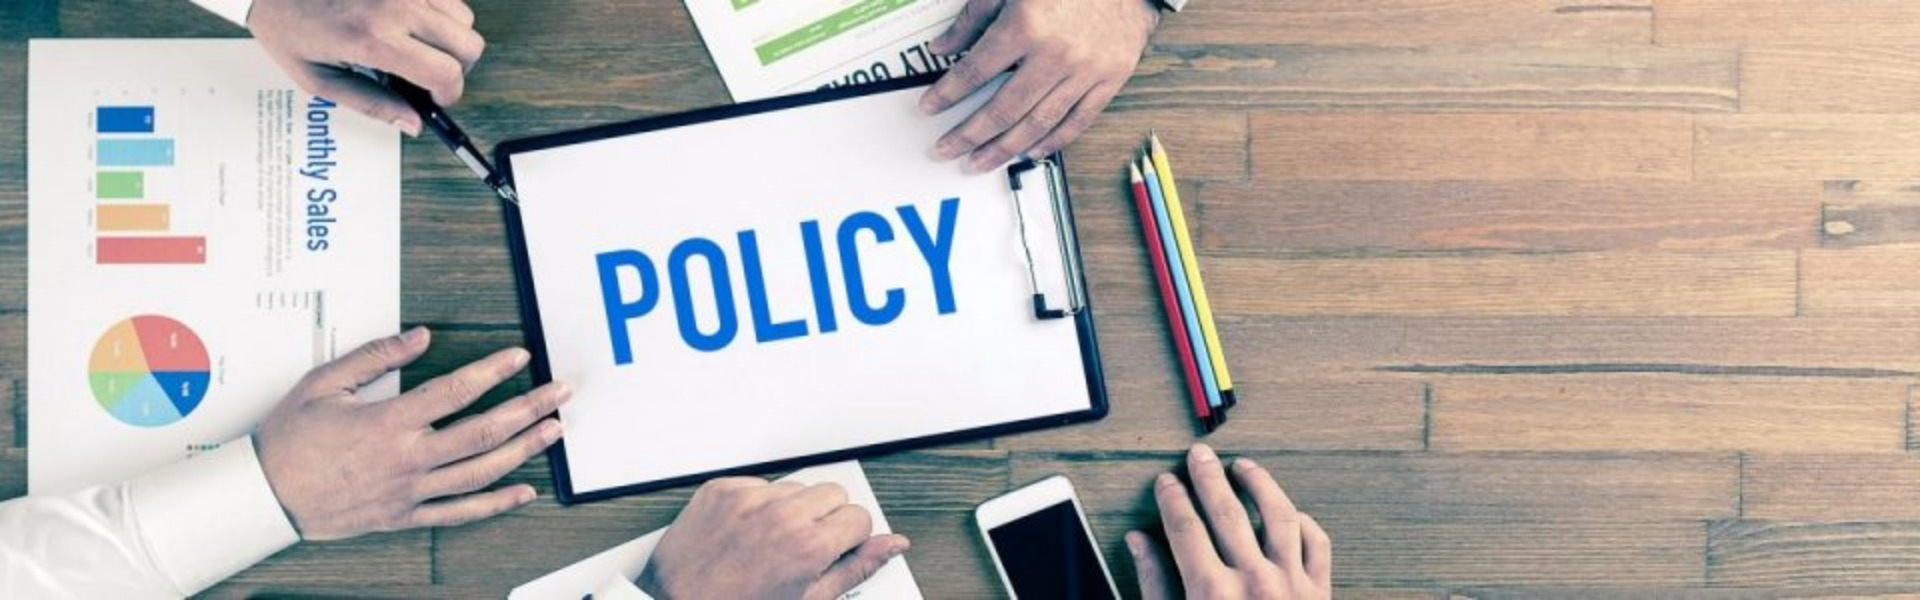 Documento di E-Policy